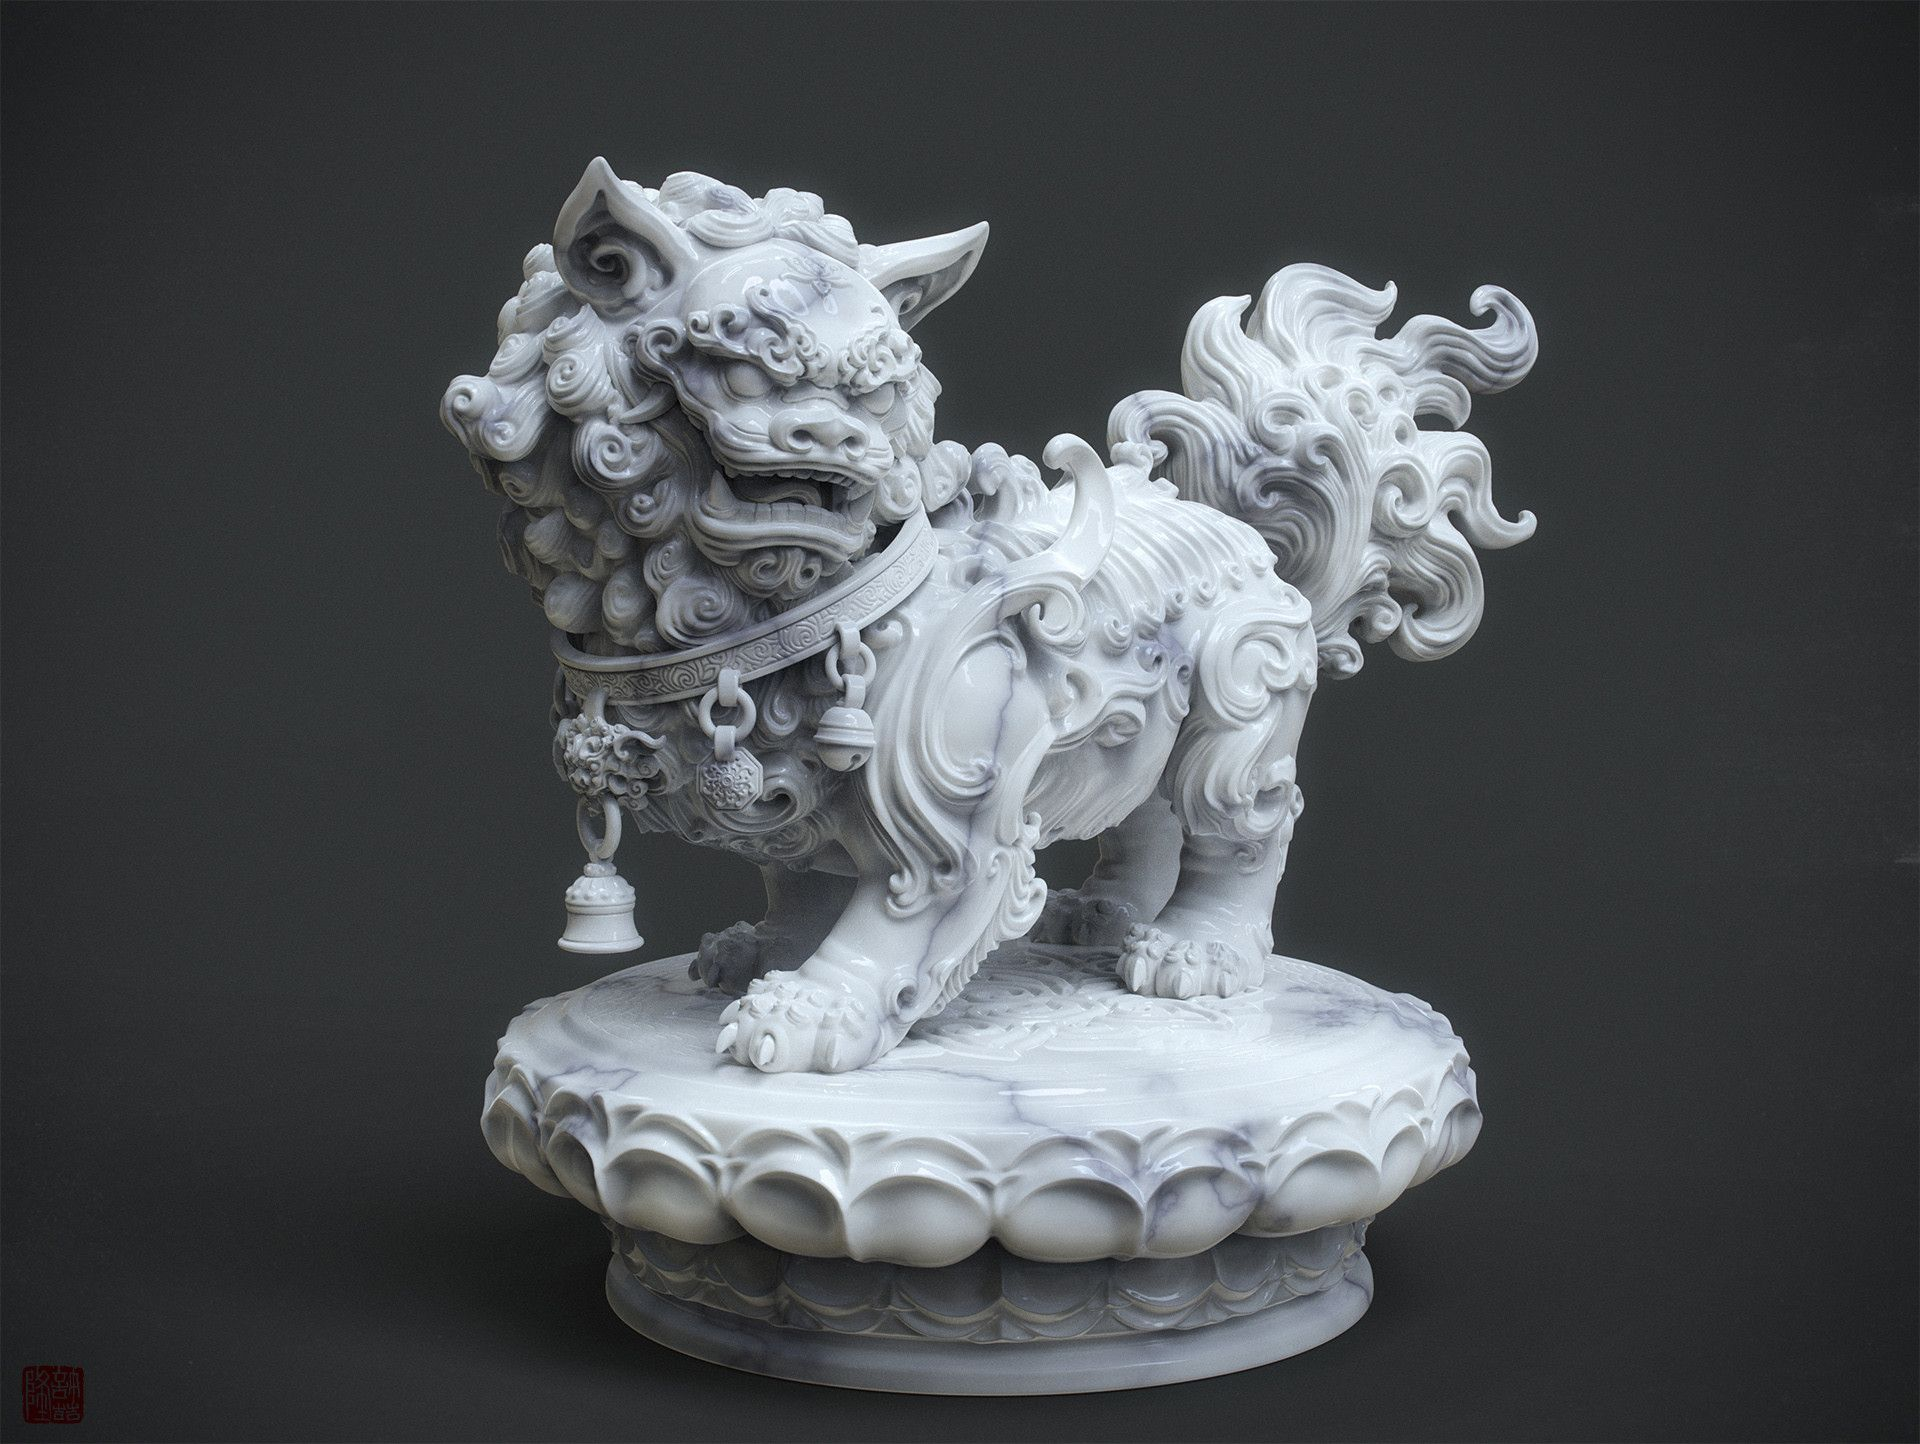 Artstation Chinese Lion Statue Marble Version And W I P Zhelong Xu Chinese Lion Statue Asian Sculptures Inspirational Sculpture